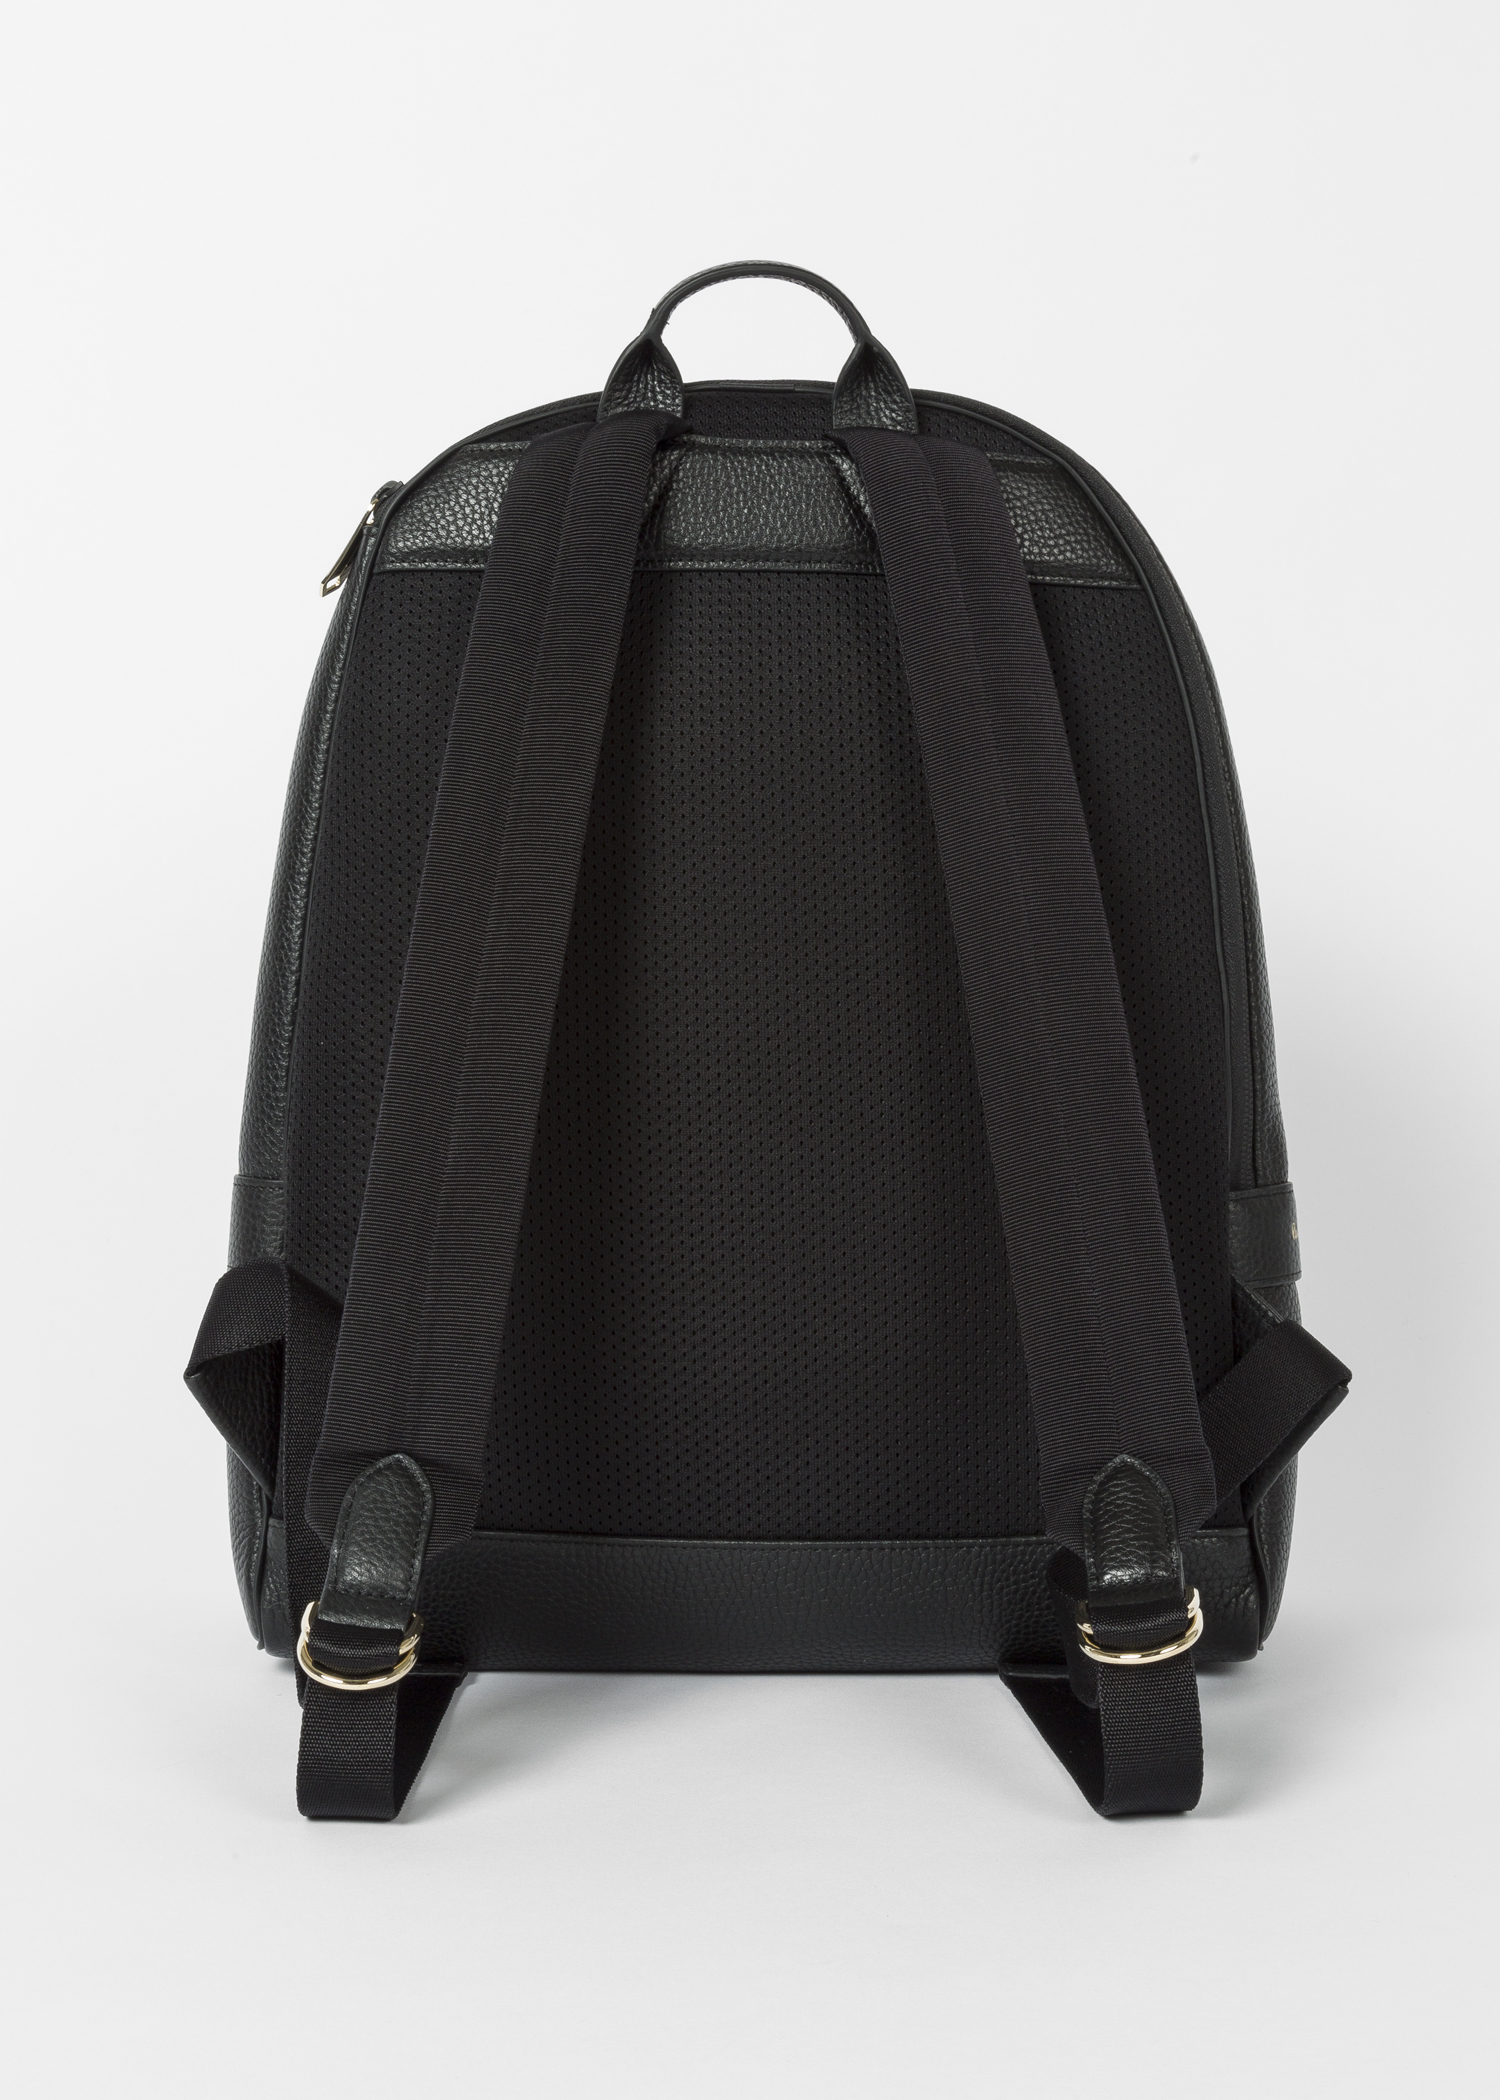 1a3864fbe4 Back view- Men s Black Leather Signature Stripe Backpack by Paul Smith